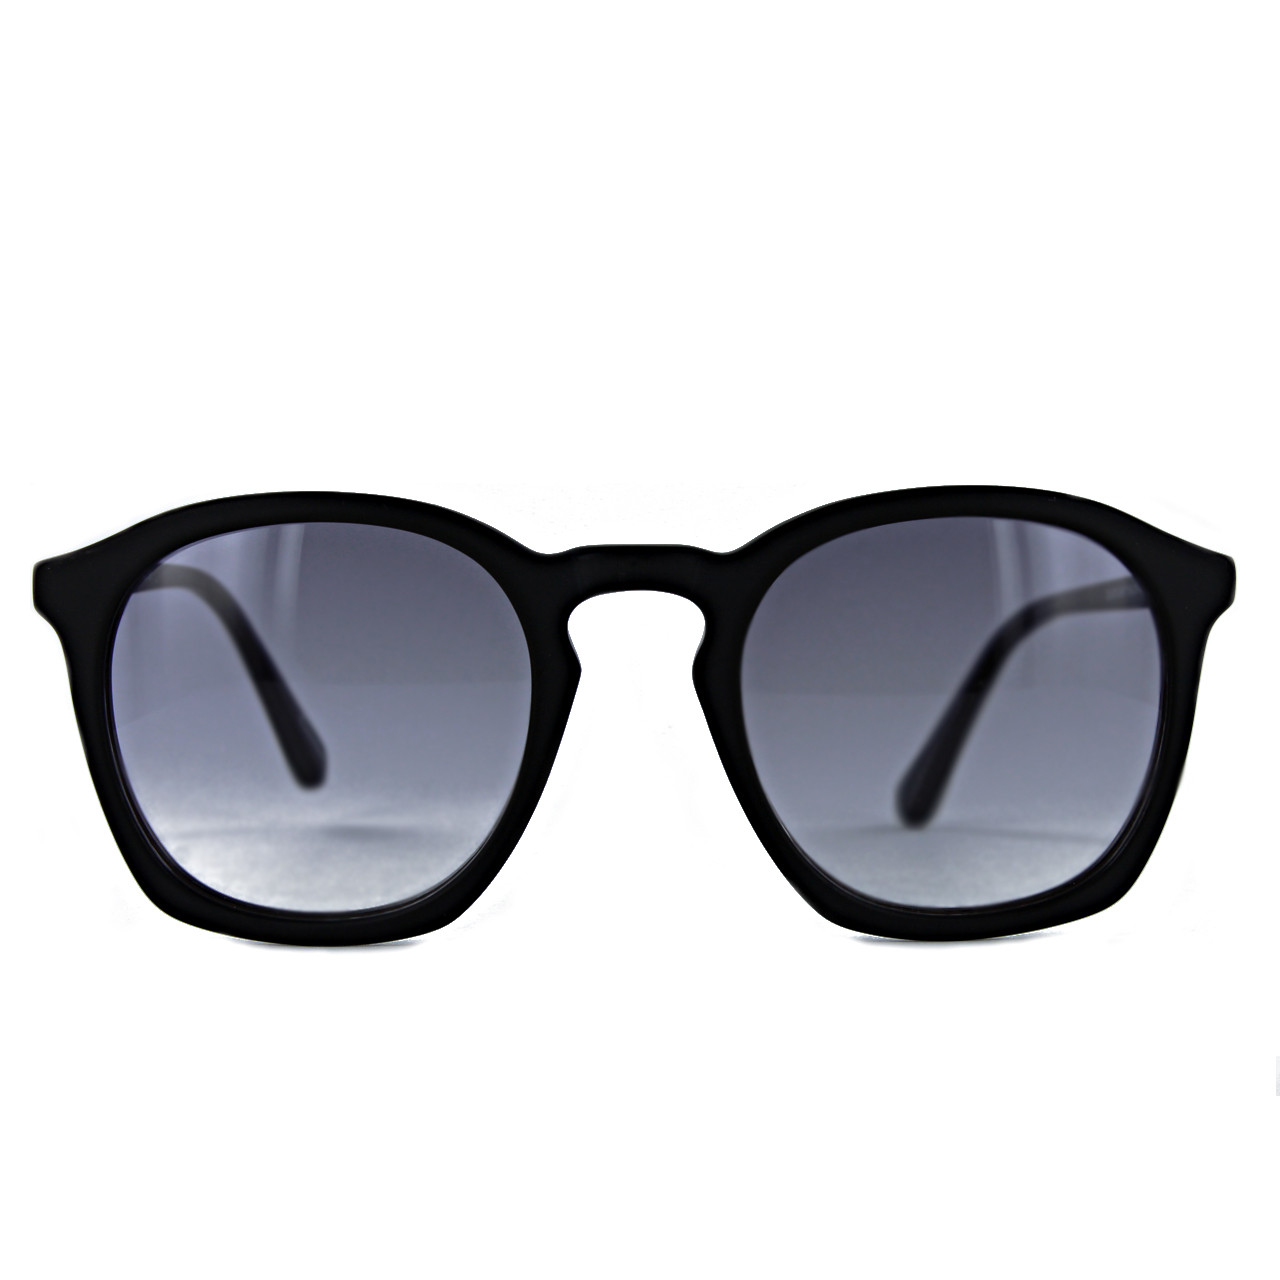 Black Matt with Gradient Grey Lenses